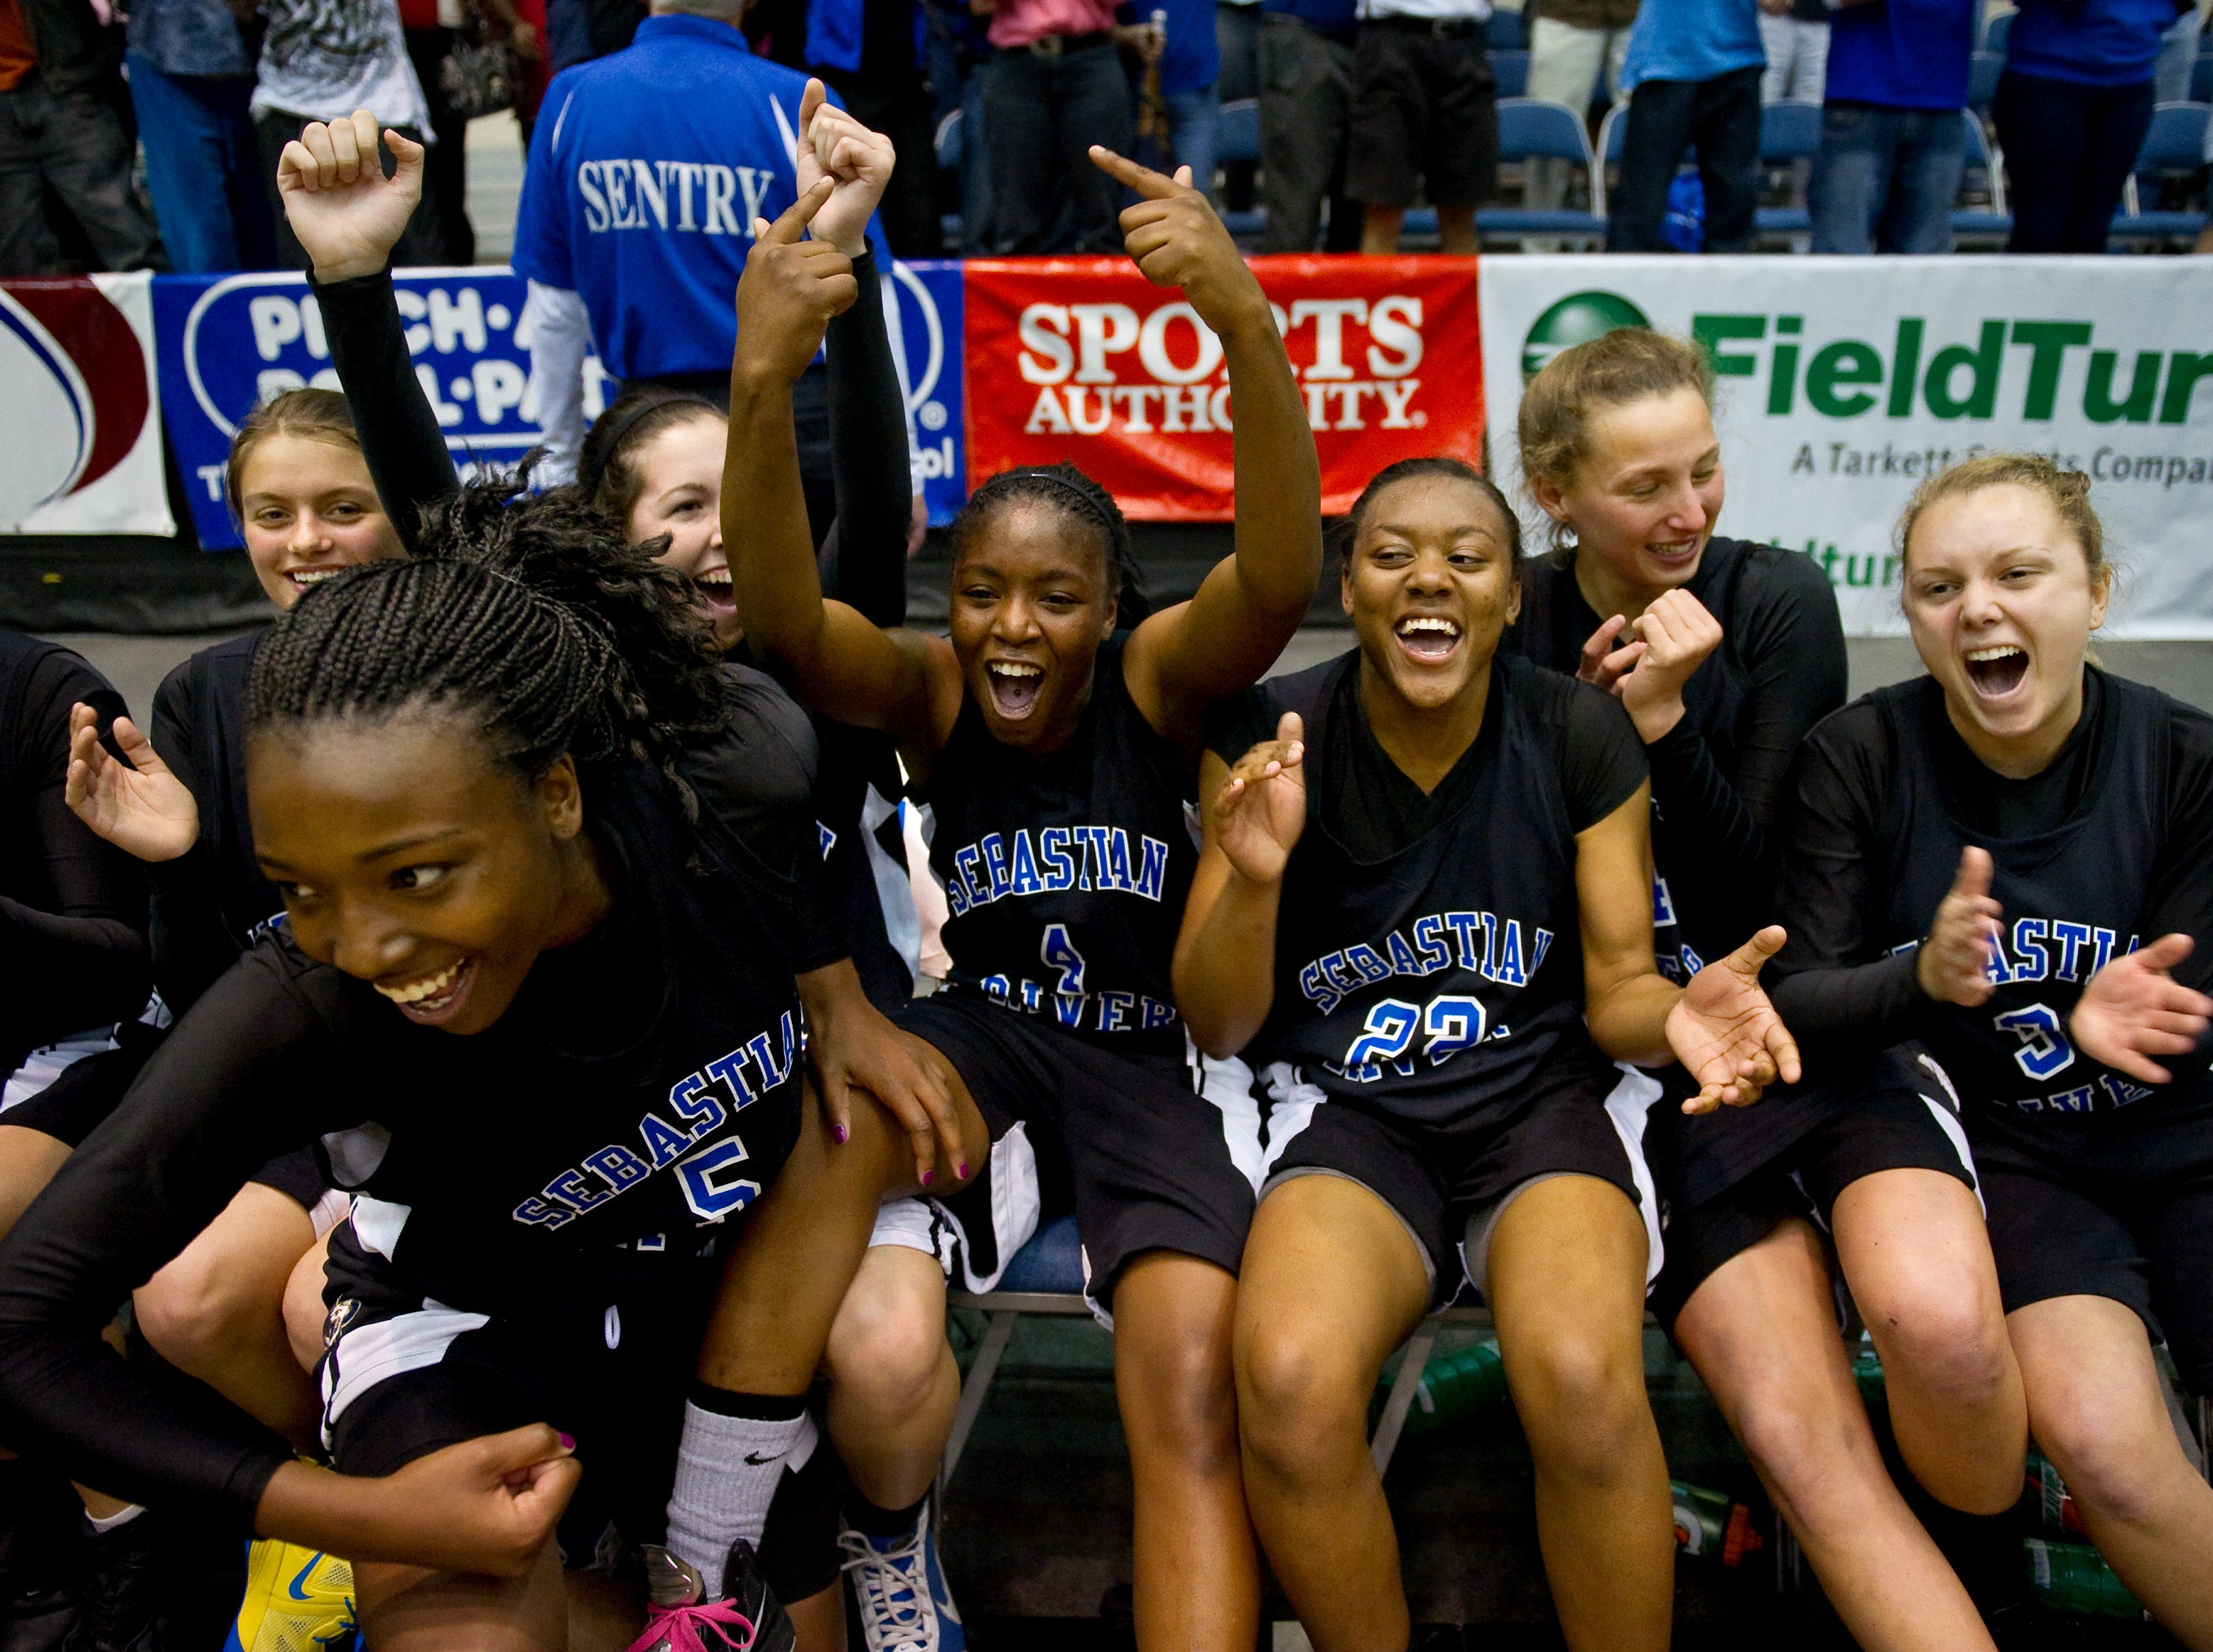 SAM WOLFE/TREASURE COAST NEWSPAPERS